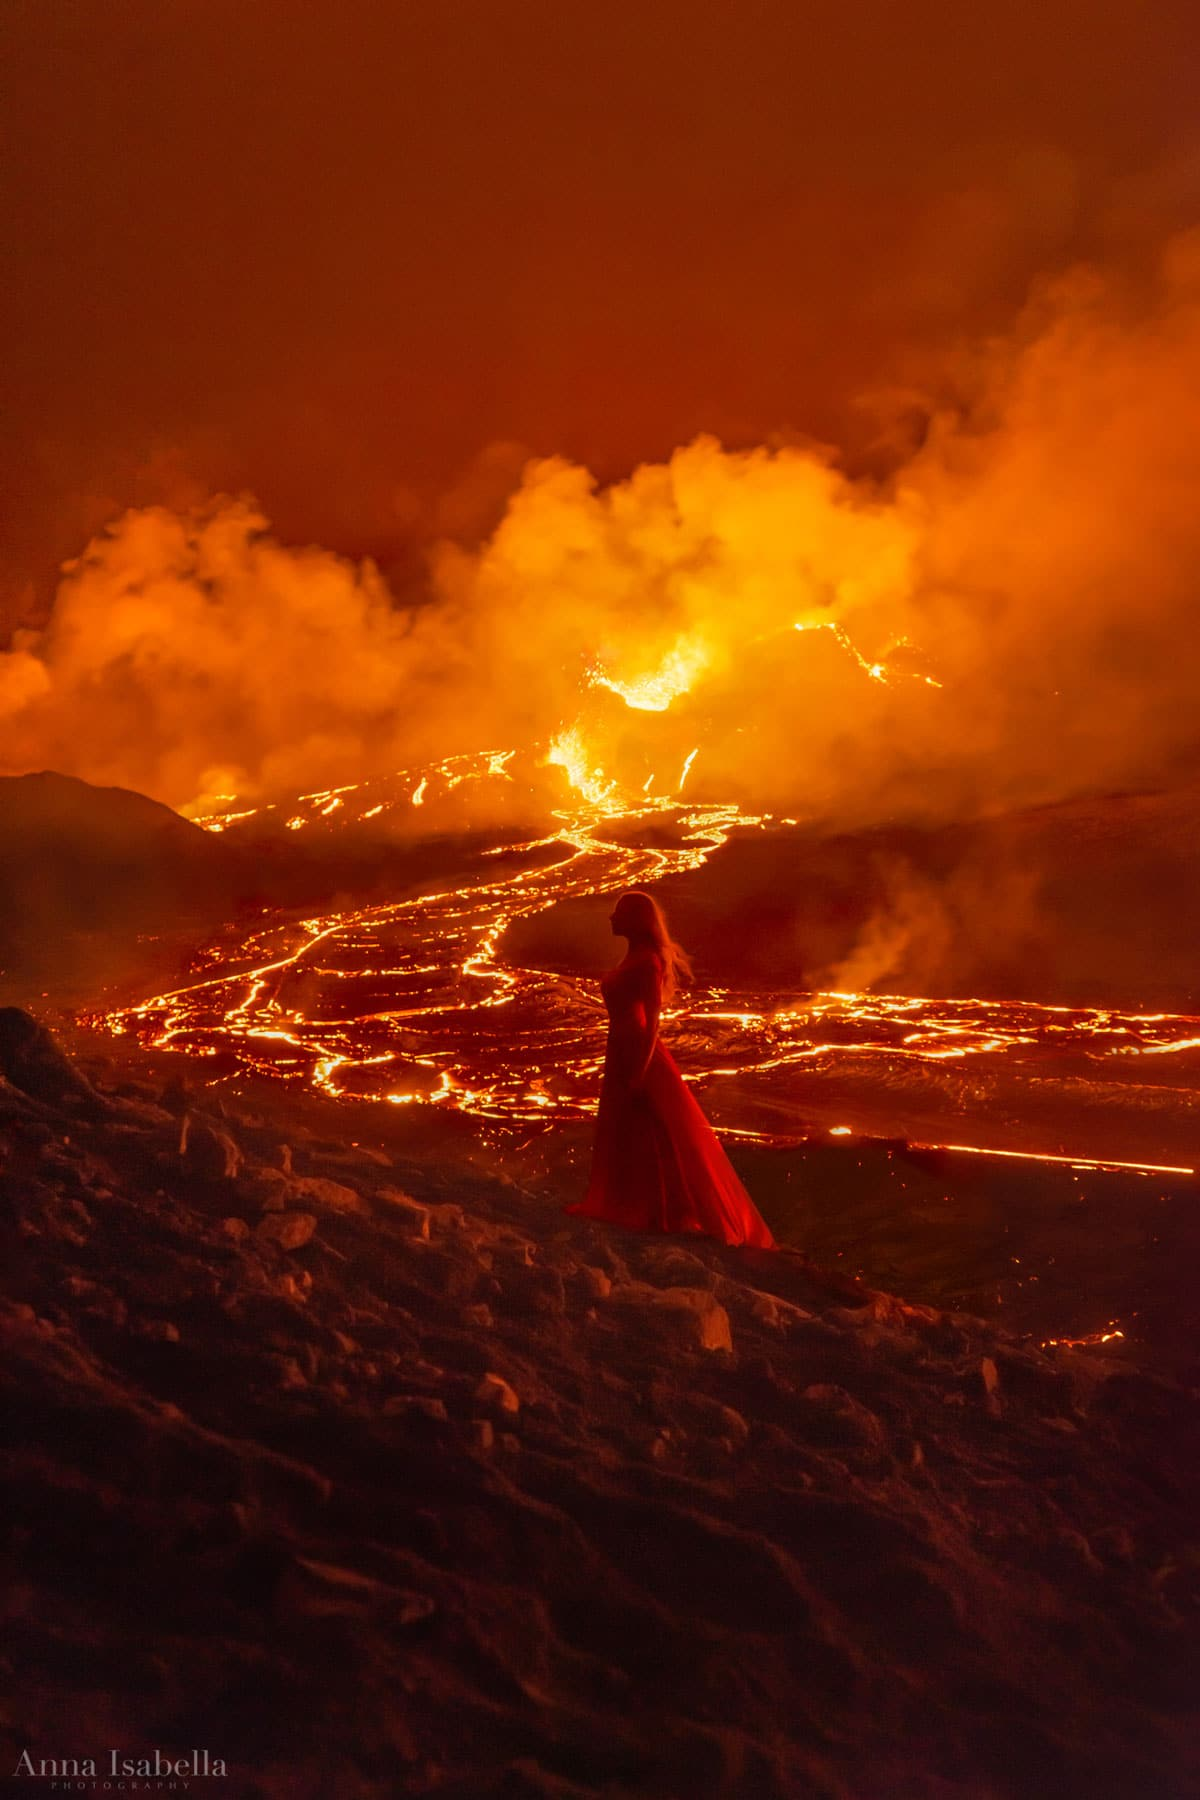 Portrait of a Woman Next to Erupting Volcano in Iceland